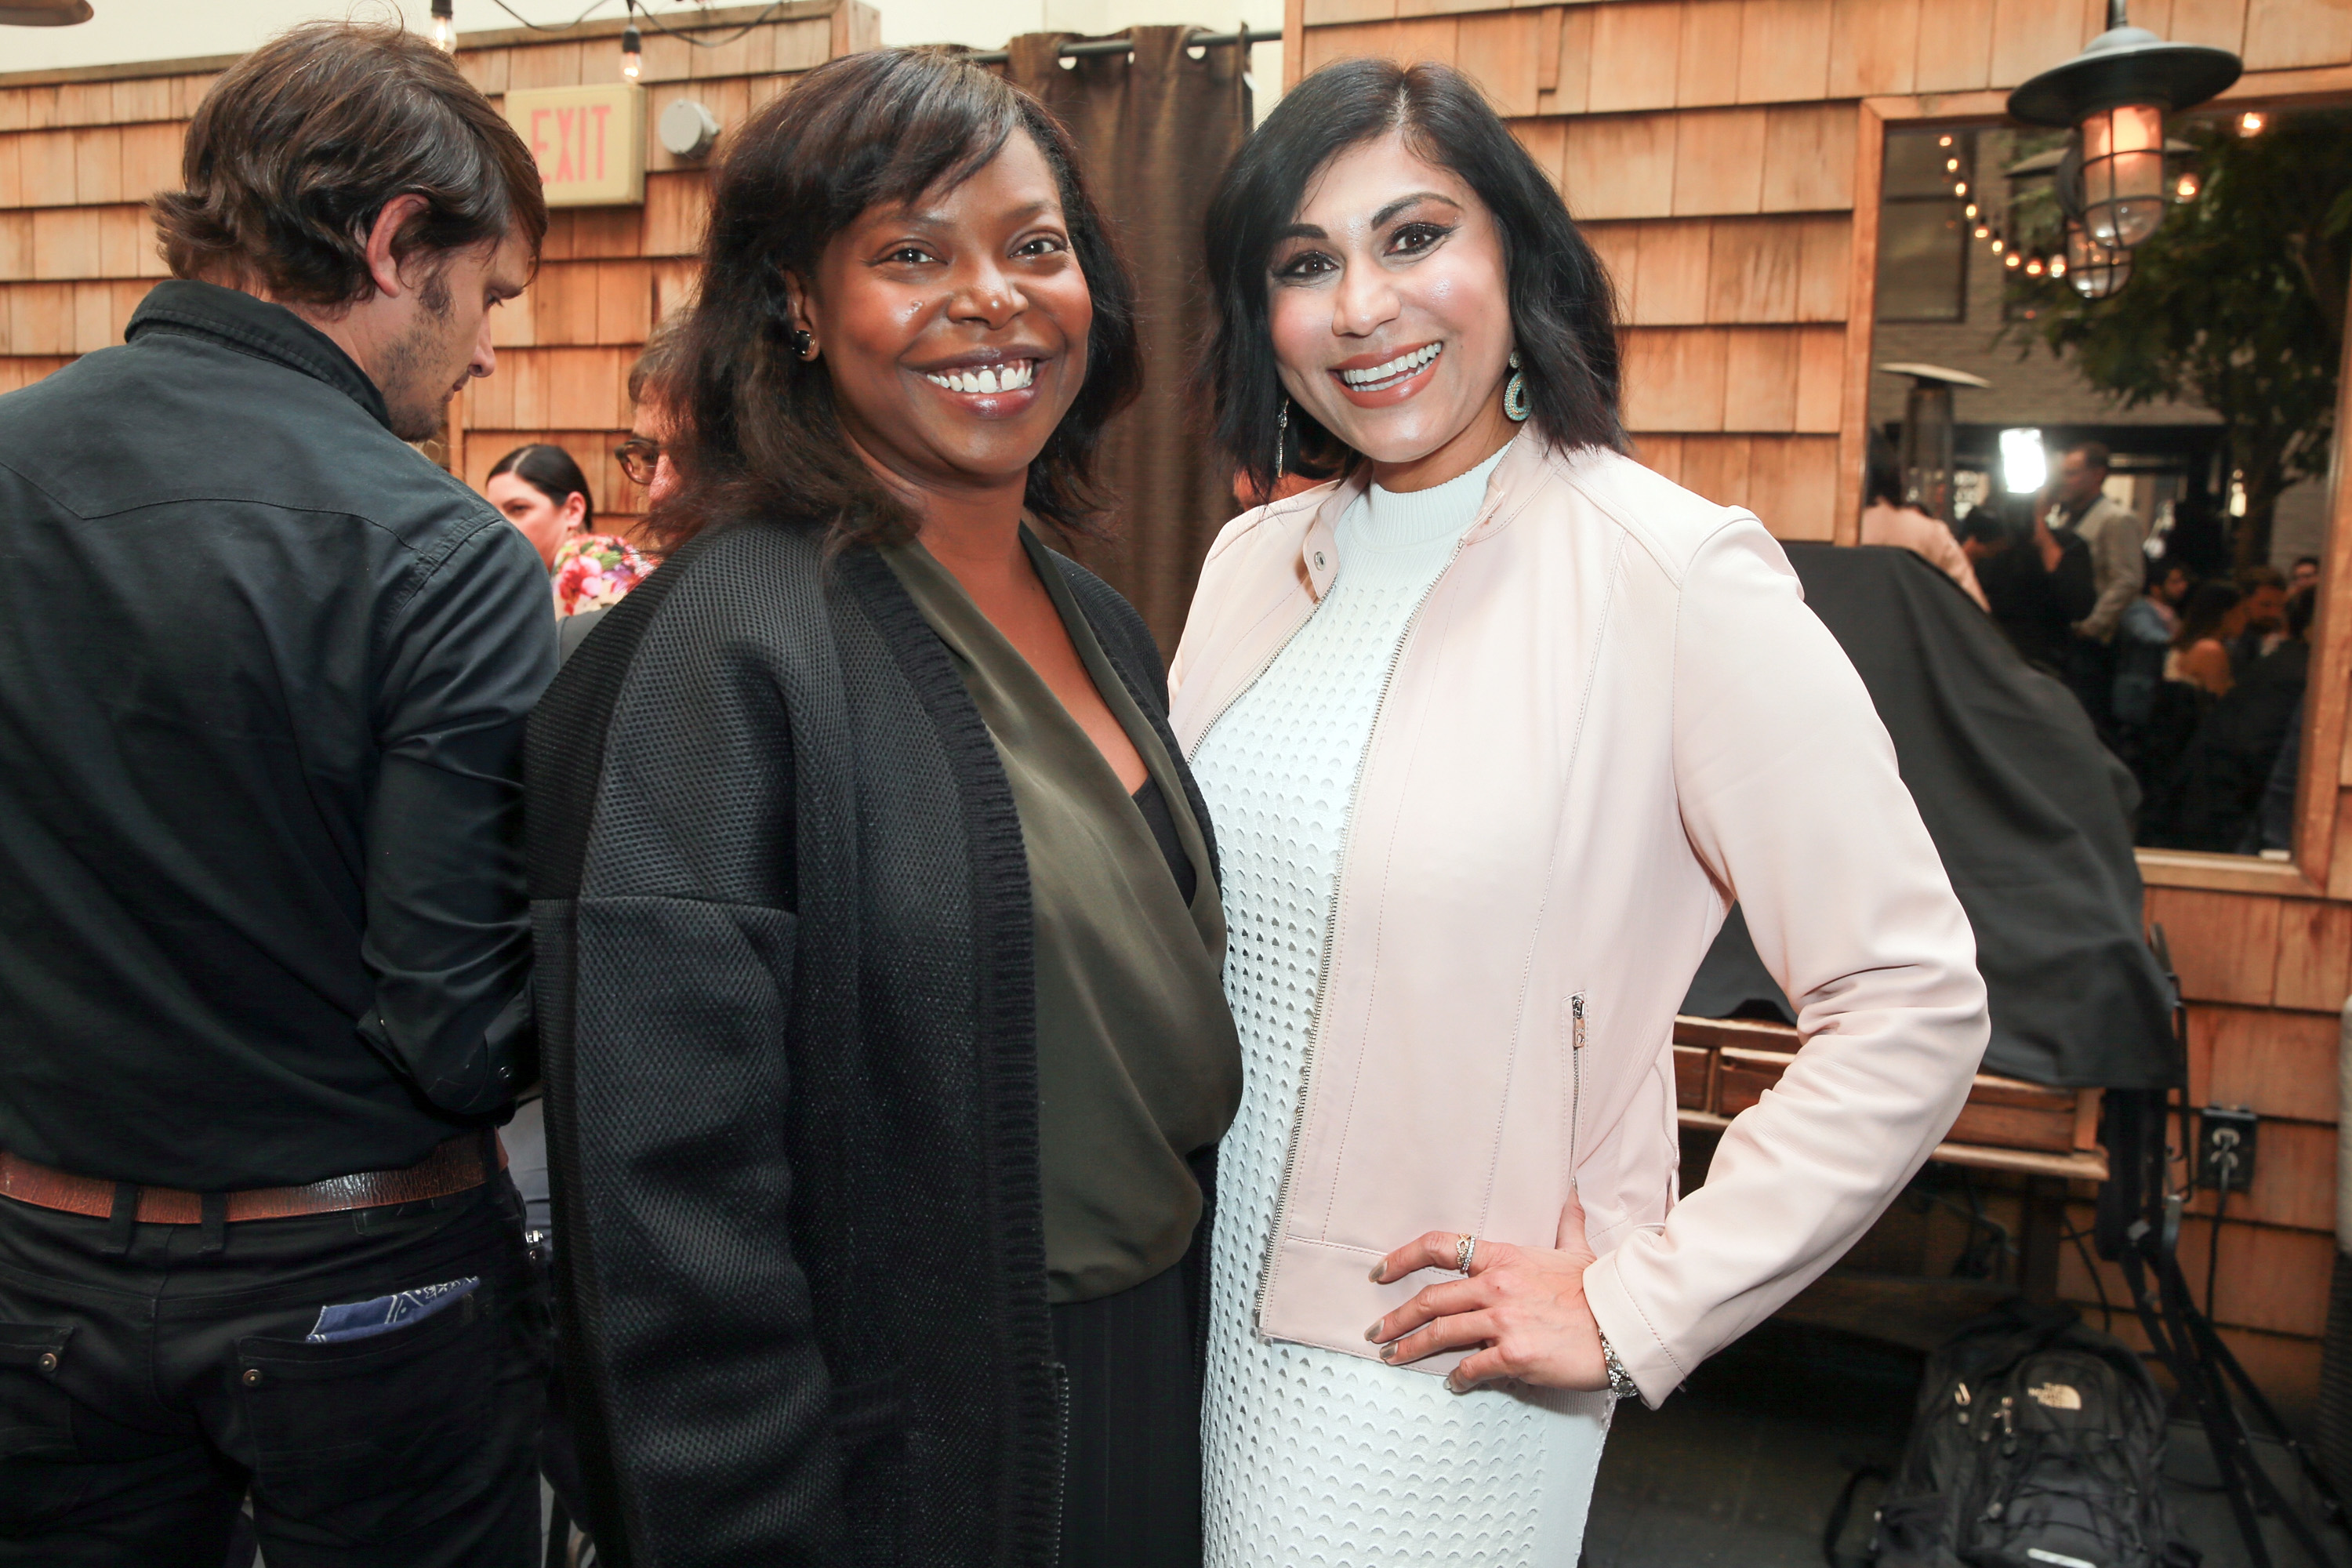 HOLLYWOOD, CA - NOVEMBER 15: AFI Fest Director Jacqueline Lyanga (L) and Hanny Patel attend DIRECTV Presents The Directors Table with A24 and IndieWire at Wood & Vine on November 15, 2017 in Hollywood, California. (Photo by Rich Fury/Getty Images for DIRECTV CINEMA)